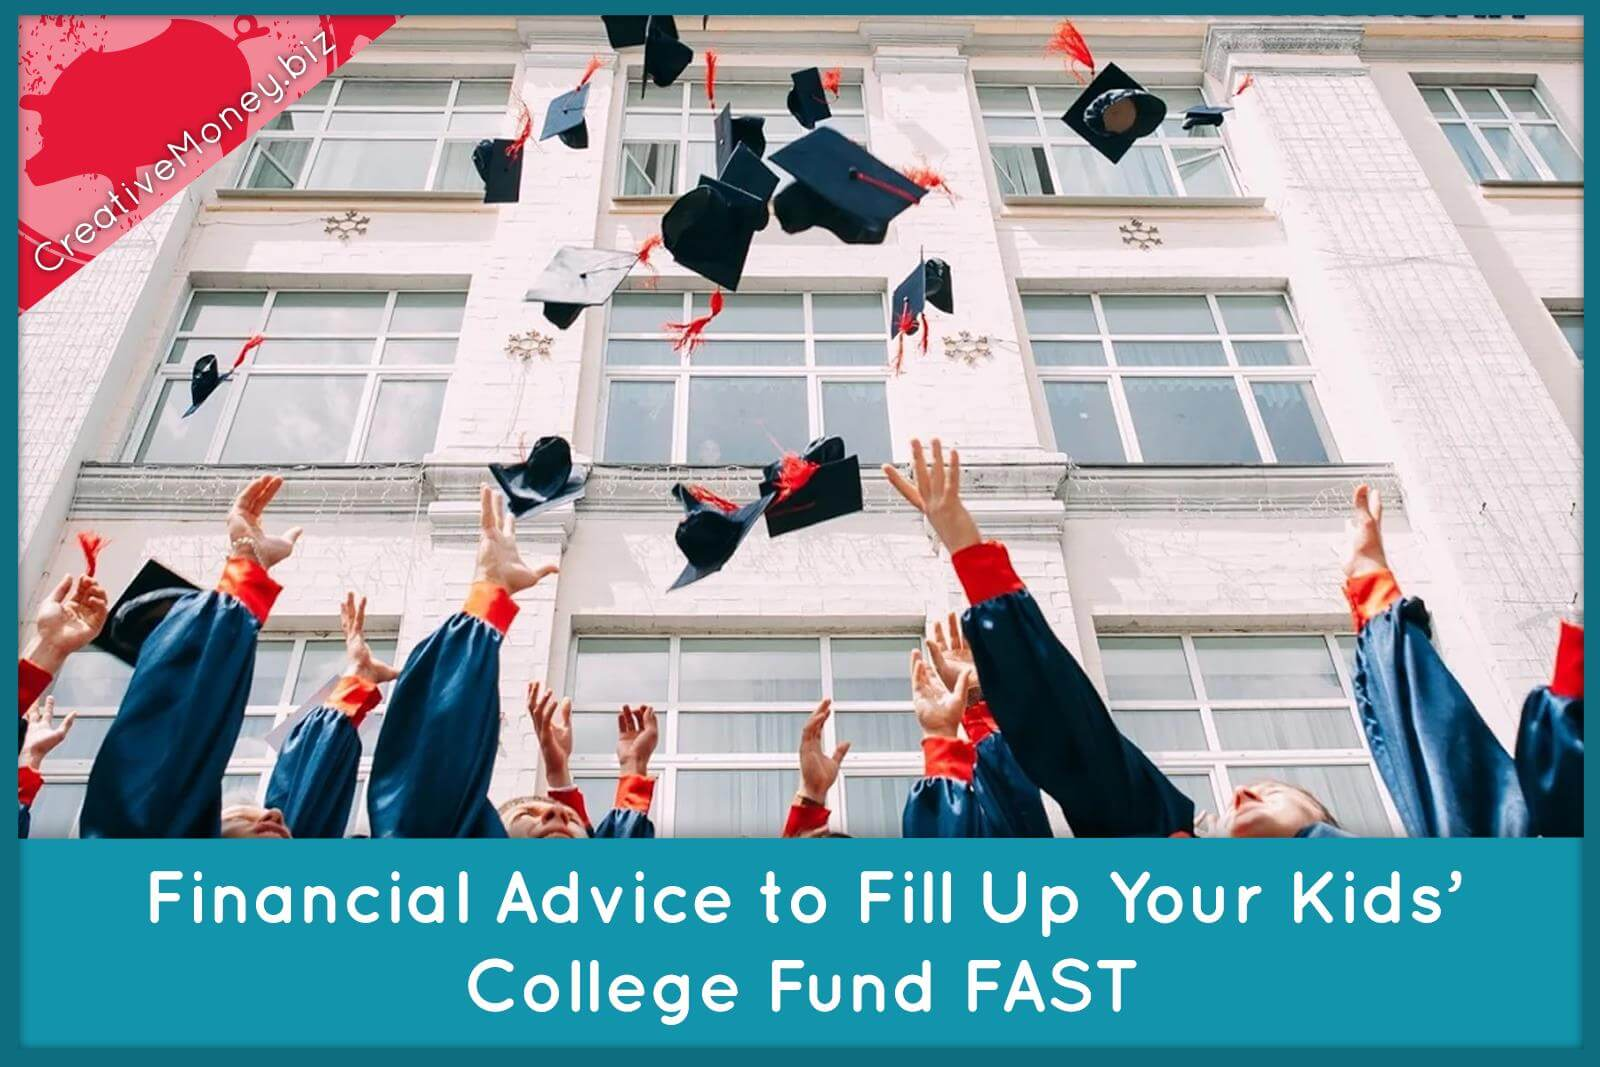 Financial Advice to Fill Up Your Kids' College Fund FAST